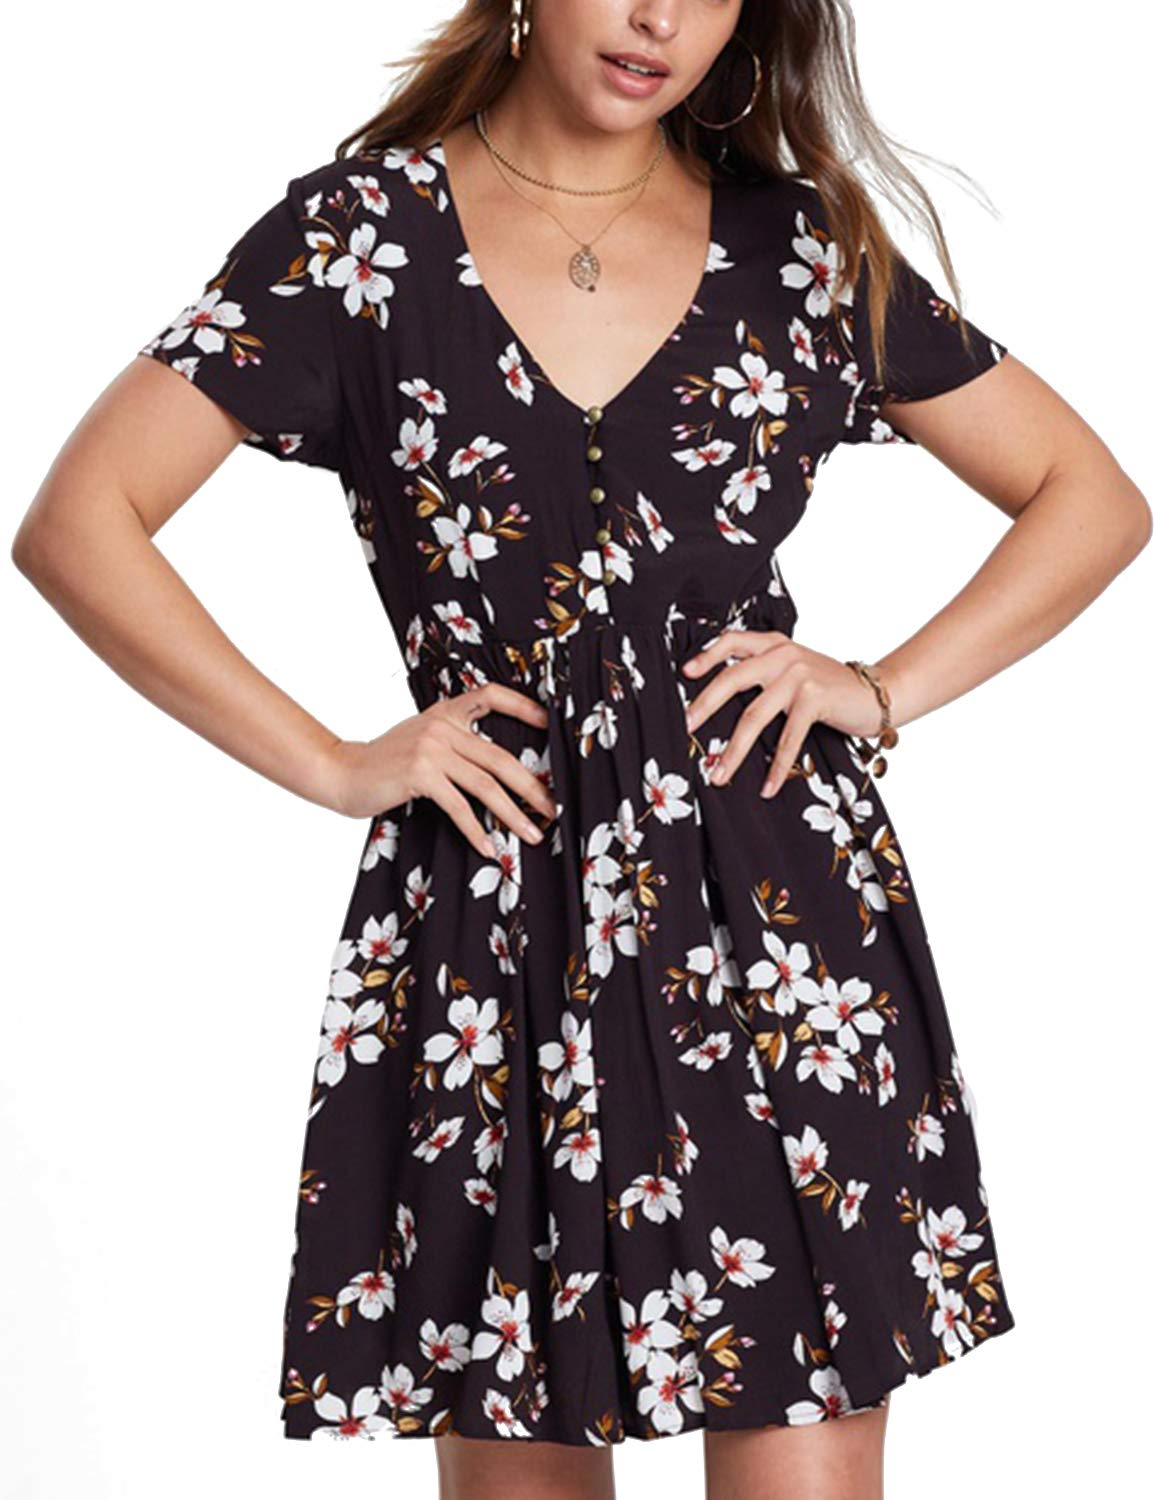 Blooming Jelly Women's V Neck Short Sleeve Floral Print Flare Mini Dress Black